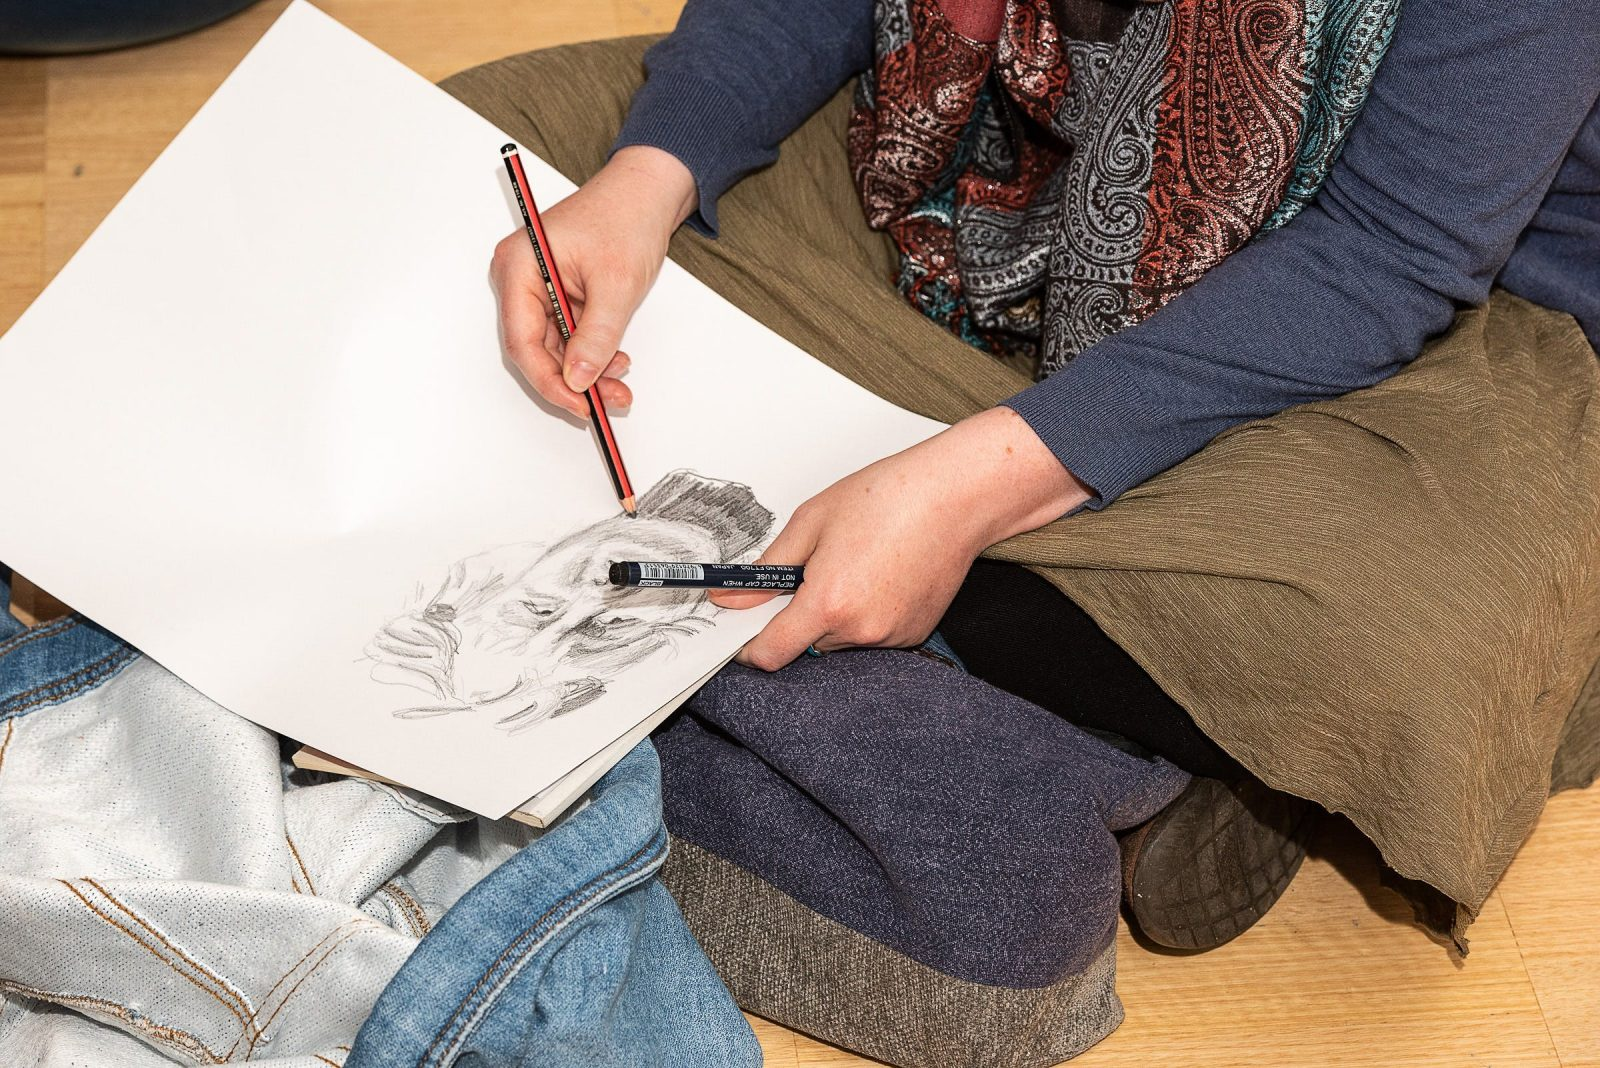 A person sketching.